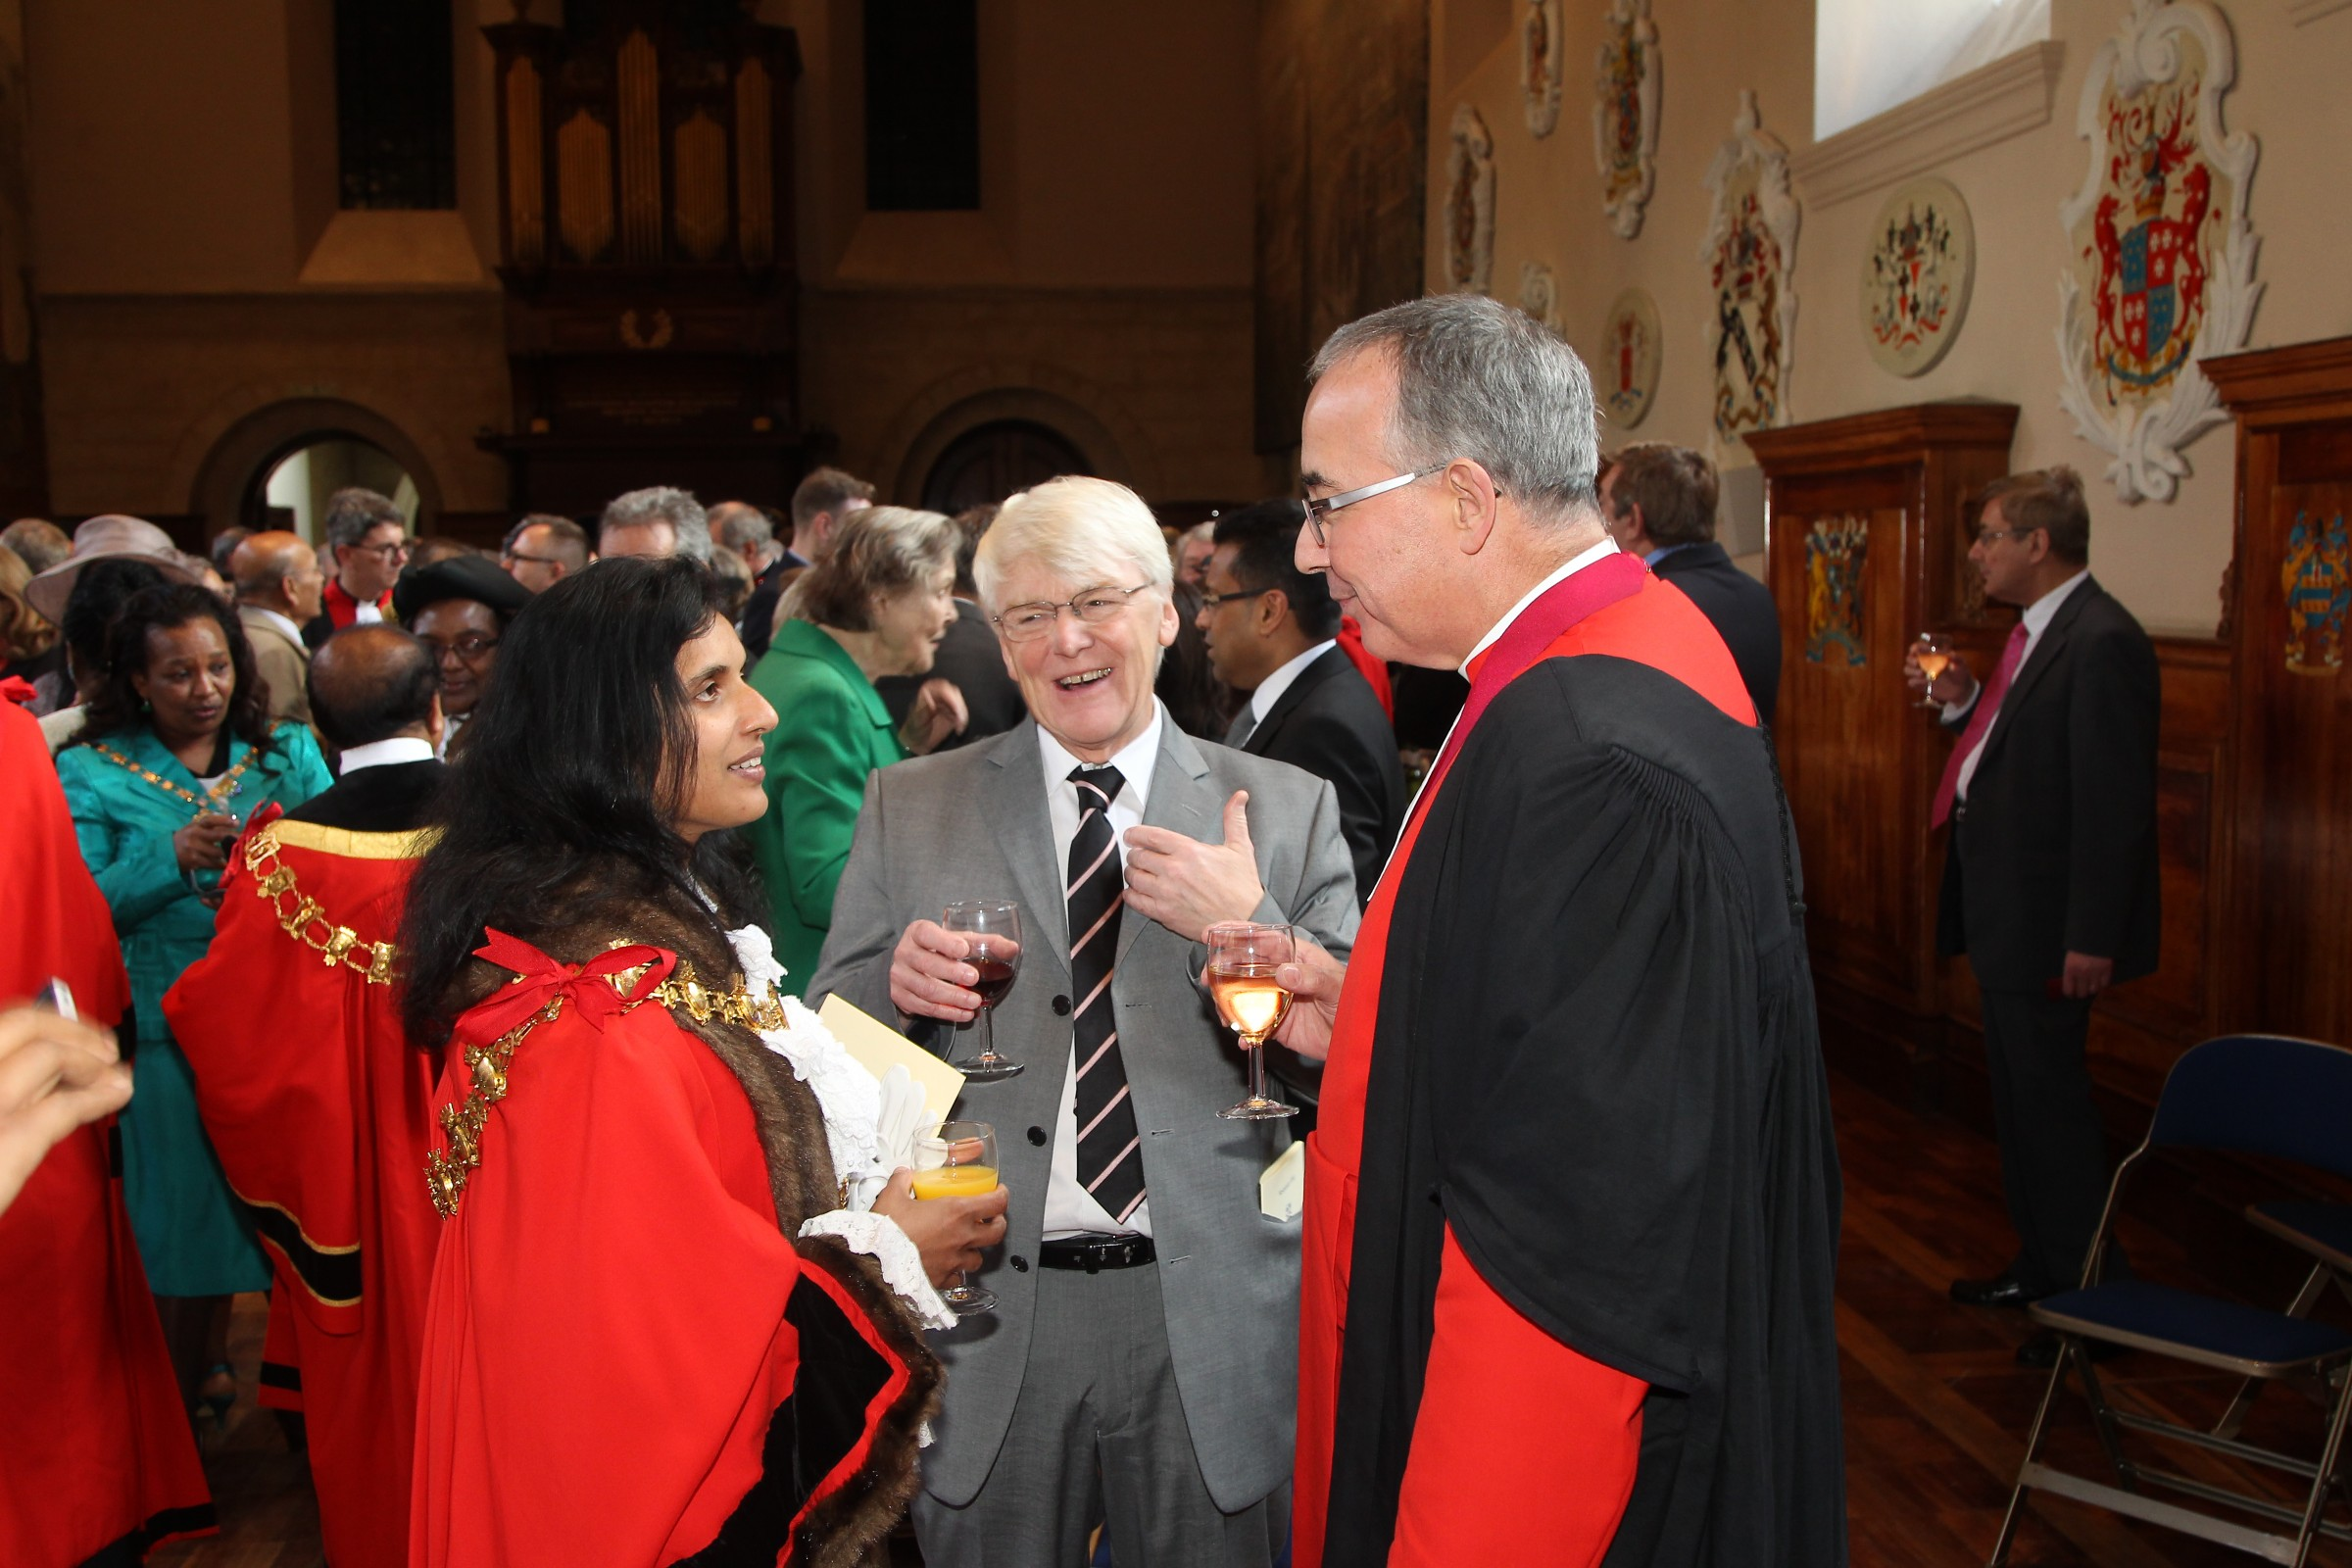 Evensong celebrating the Feast of the Dedication of Westminster Abbey in the presence of The Lord Mayor of Westminster and the Mayors of the London Boroughs.